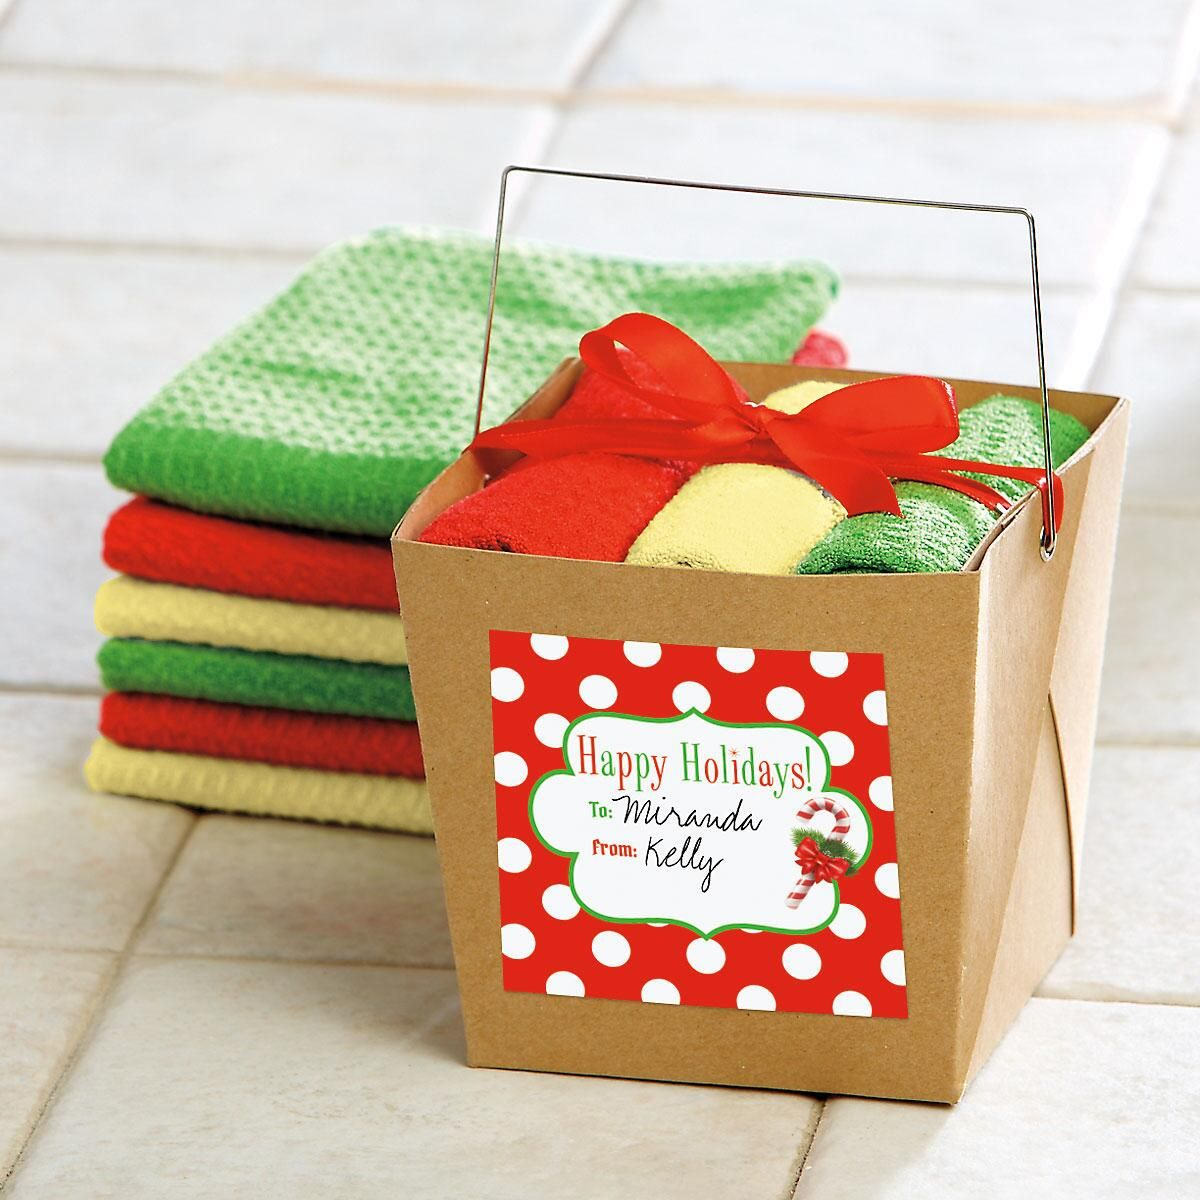 Microfiber Cleaning Cloths in Takeout Box